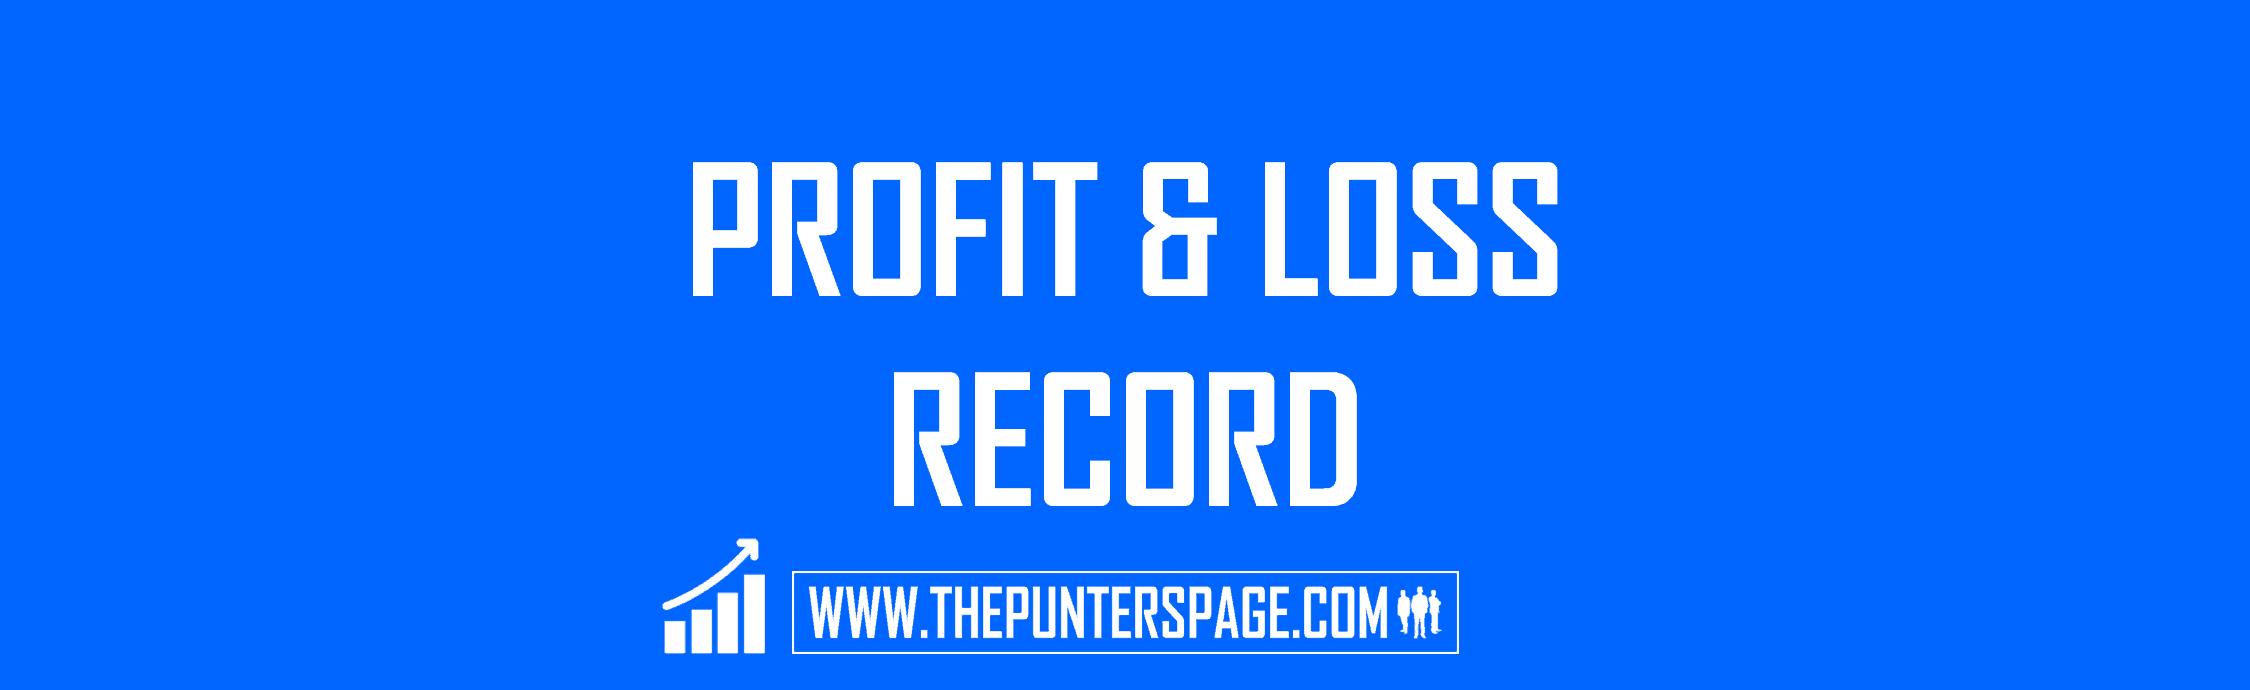 Profit & Loss Record